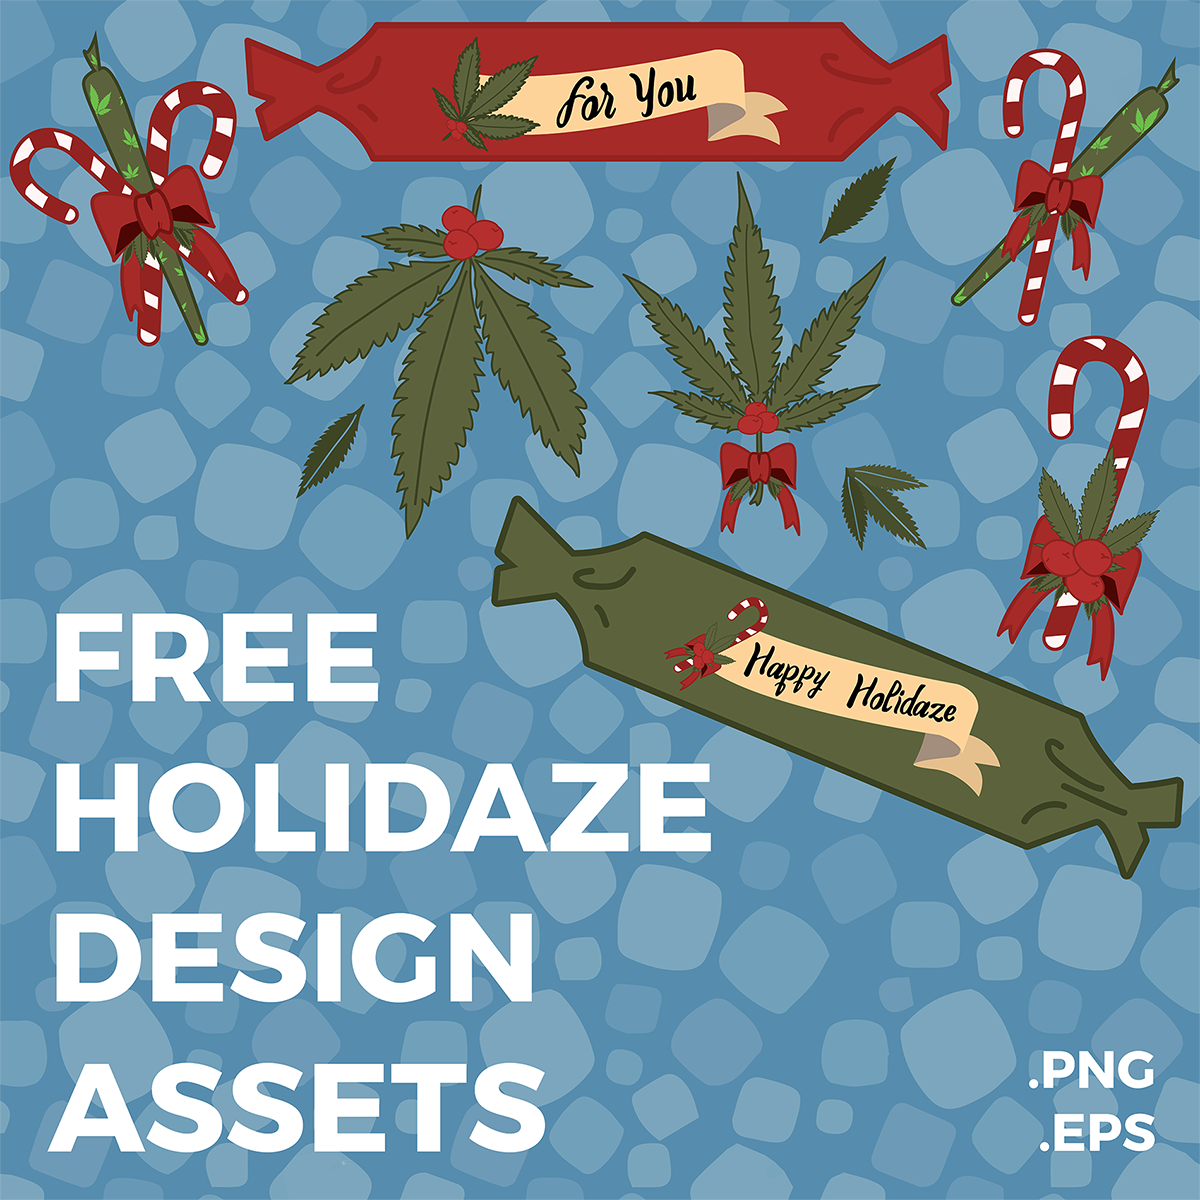 Cannabis Mistletoe, Candy Canes & Poppers - Holidaze Assets